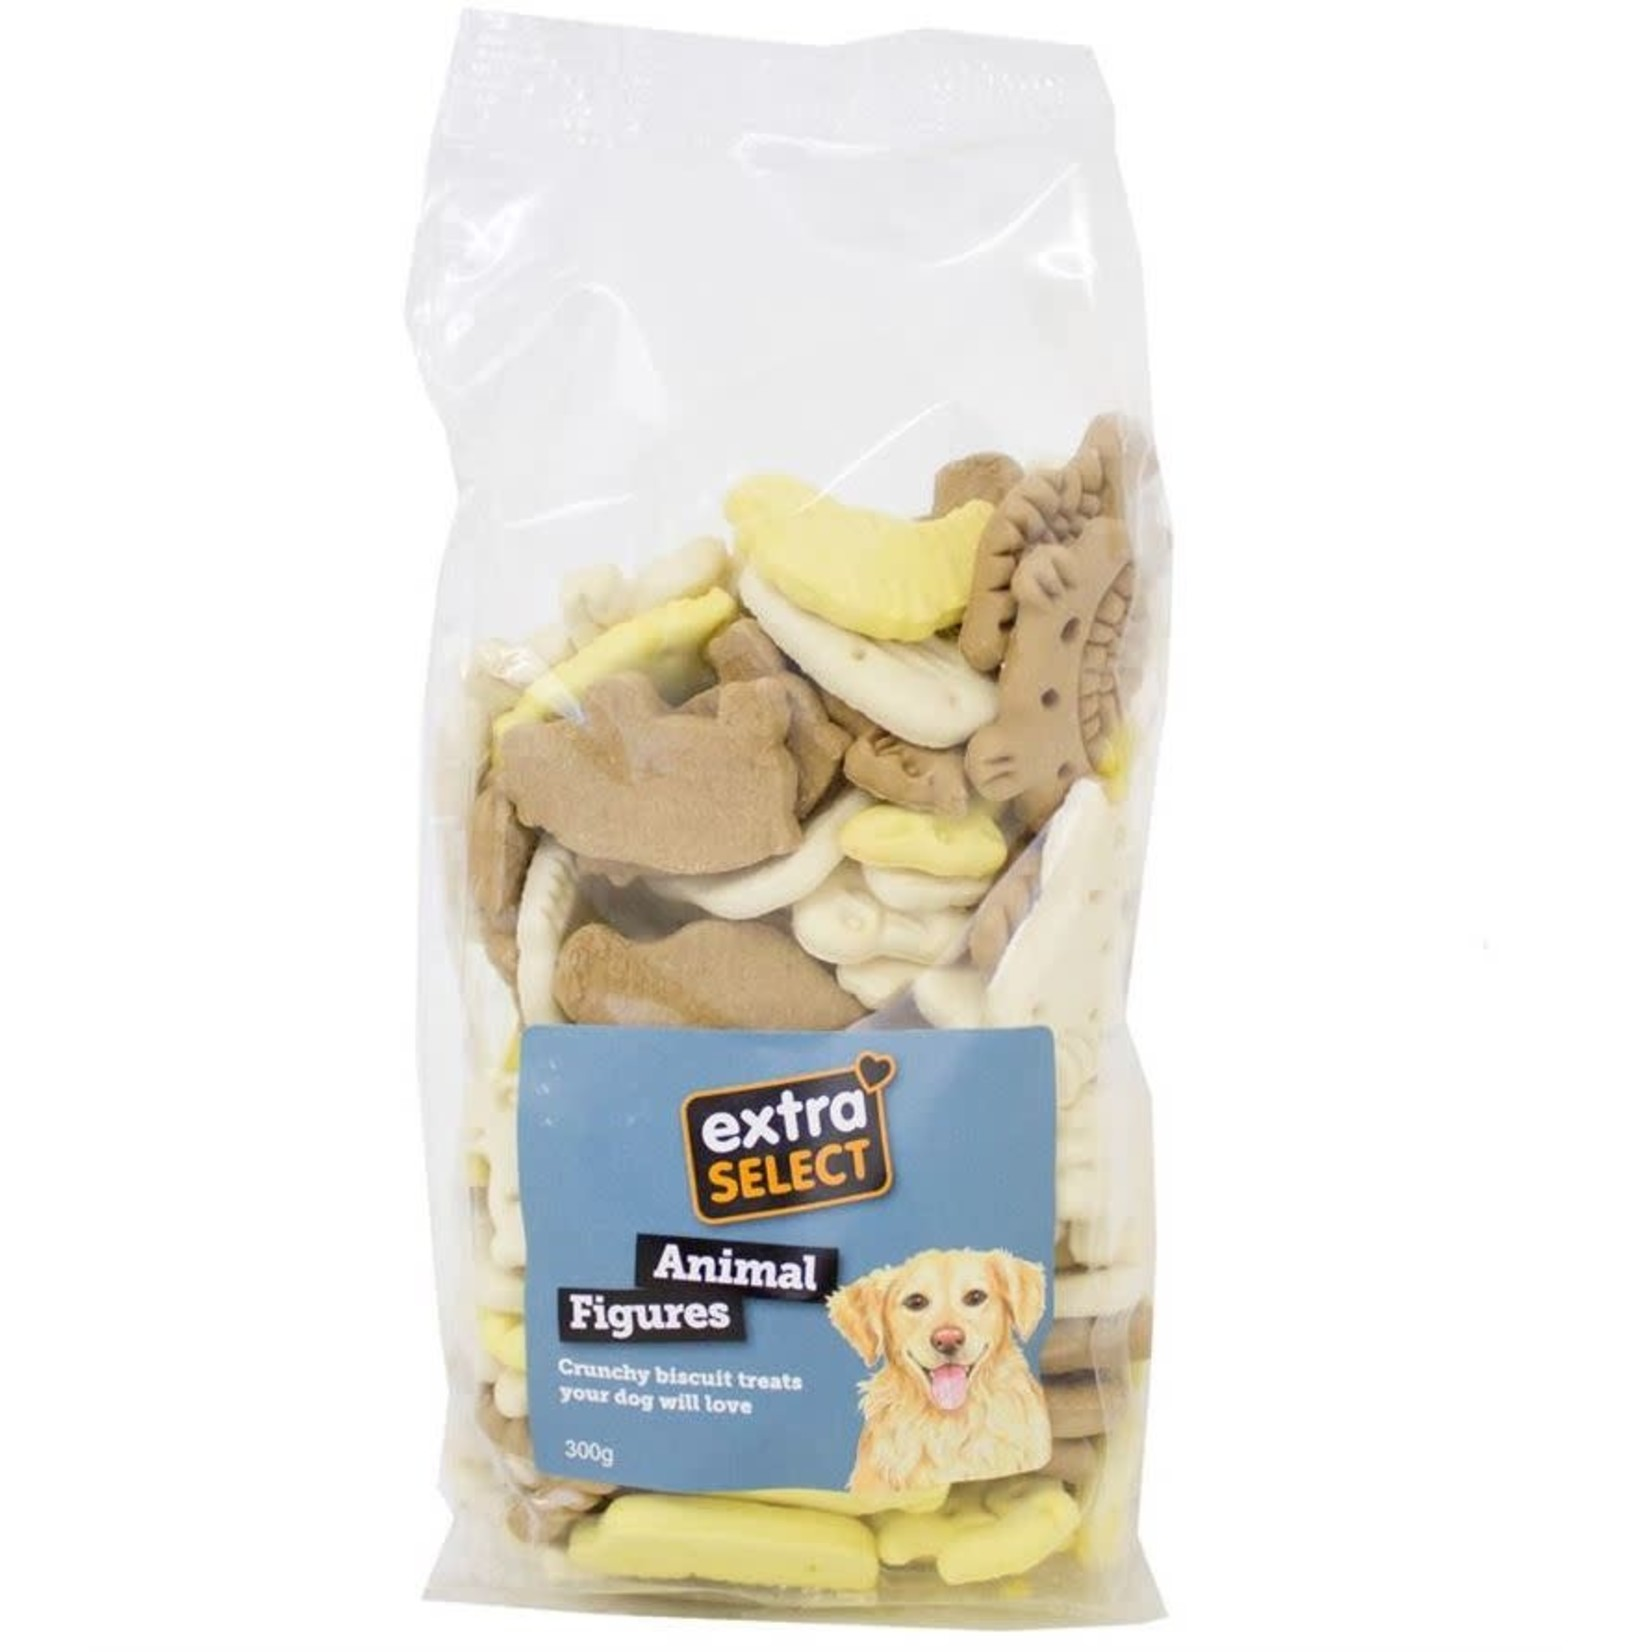 Extra Select Animal Figure Dog Biscuit Treats 300g